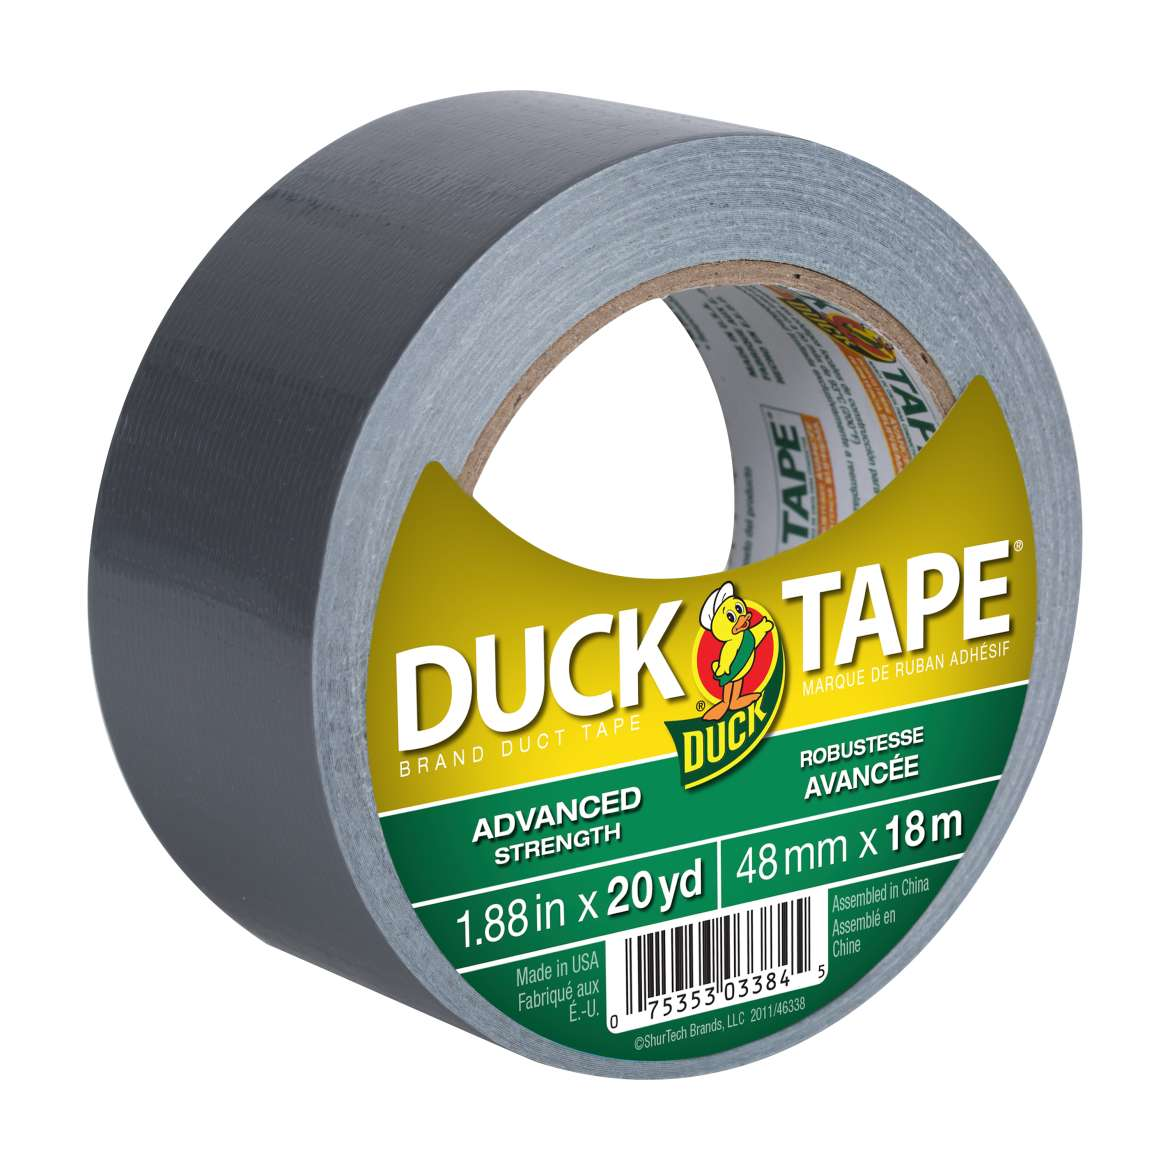 Advanced Strength Duck Tape® Brand Duct Tape - Silver, 1.88 in. x 20 yd. Image